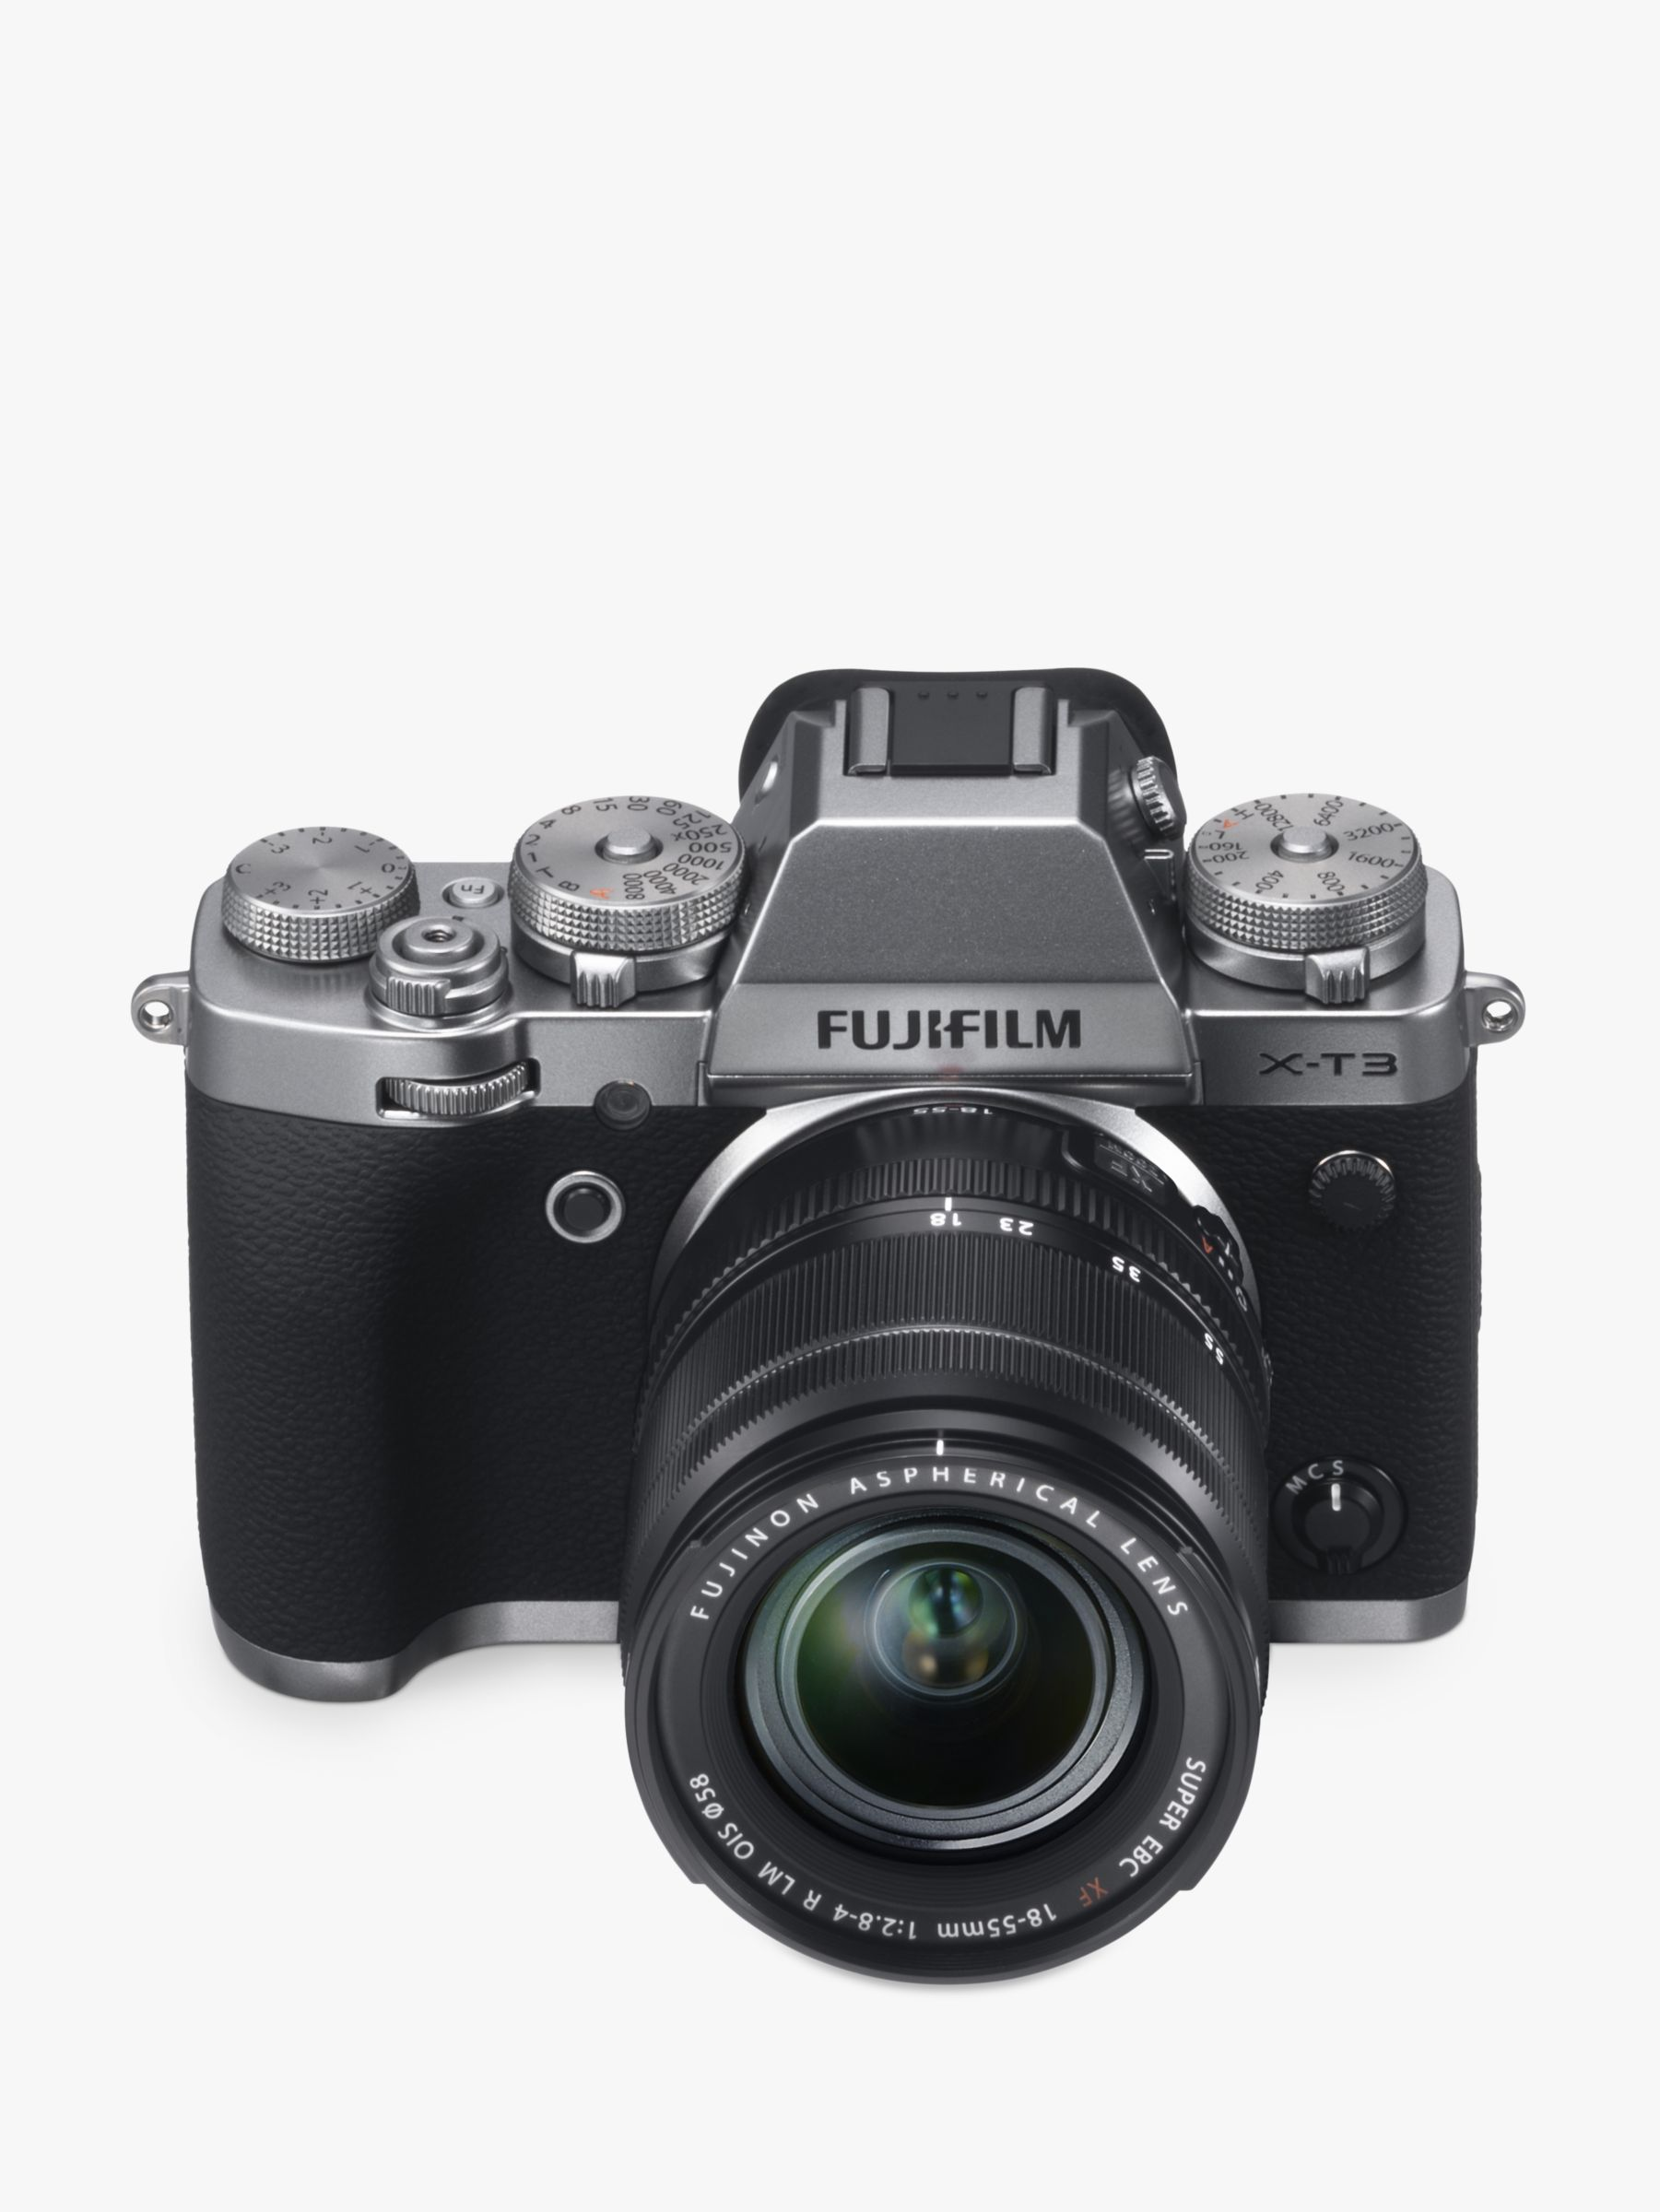 "Fujifilm Fujifilm X-T3 Compact System Camera with XF 18-55mm IS Lens, 4K Ultra HD, 26.1MP, Wi-Fi, OLED EVF, 3"" LCD Touch Screen"